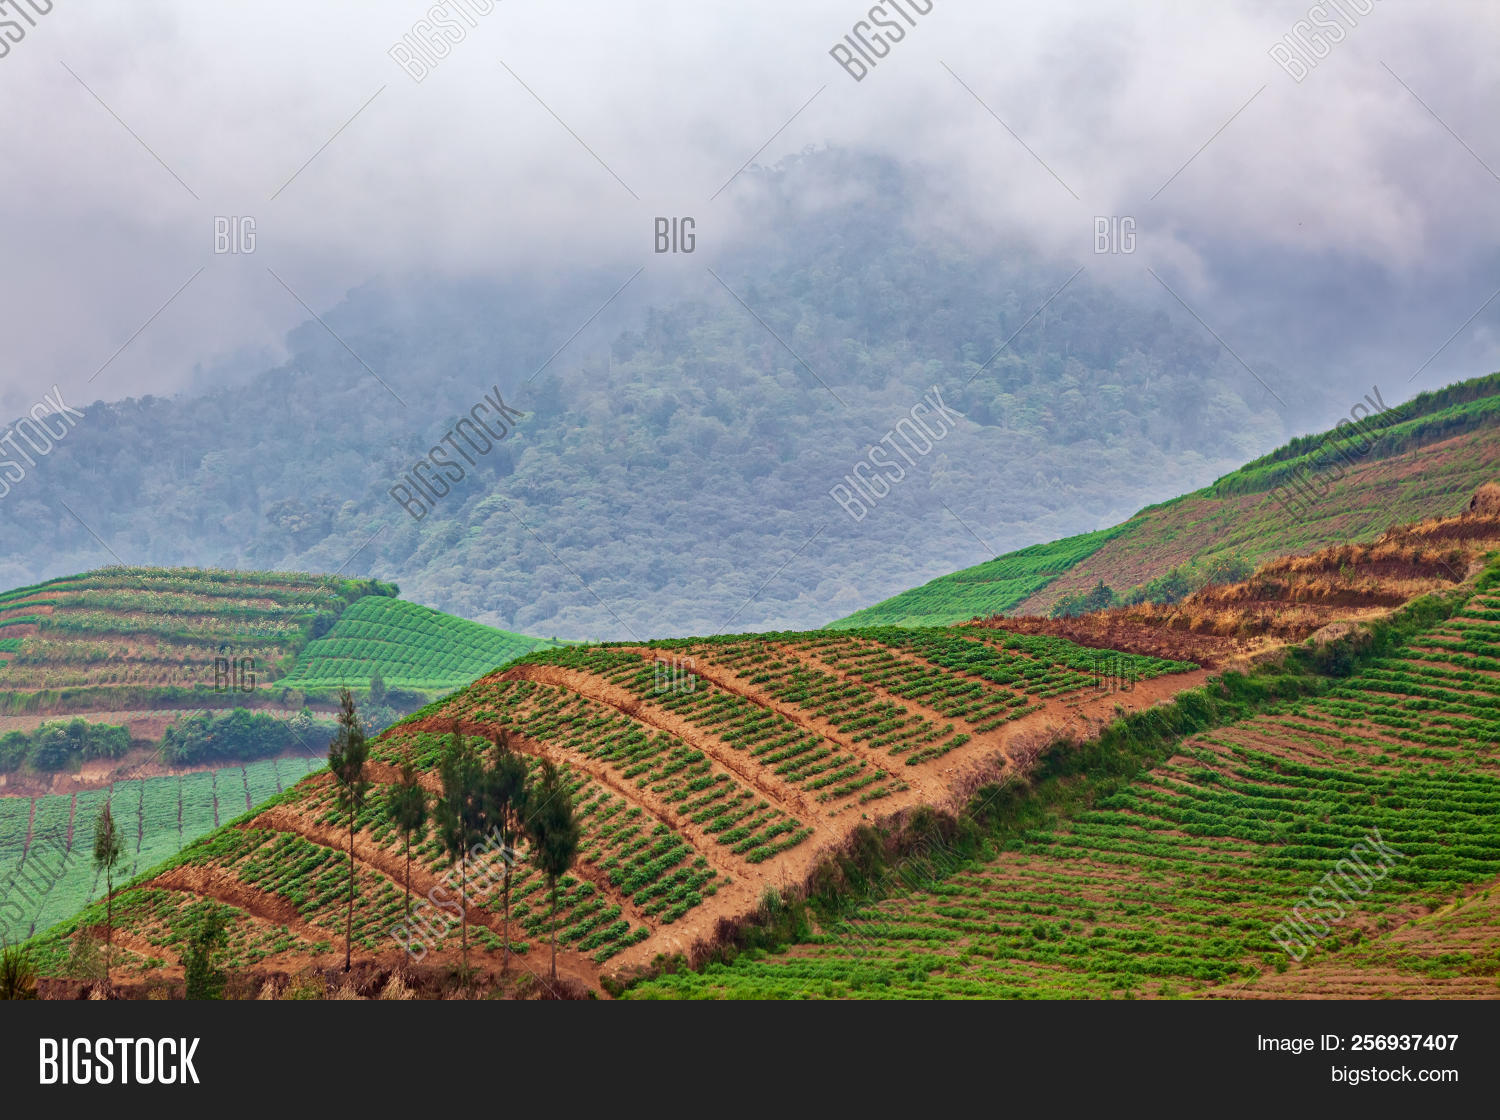 Cultivated Hillside Plantation With Growing Green Plan Rows Garden Patches On Farmland Natural Pattern Agricultural Land Fresh Crop